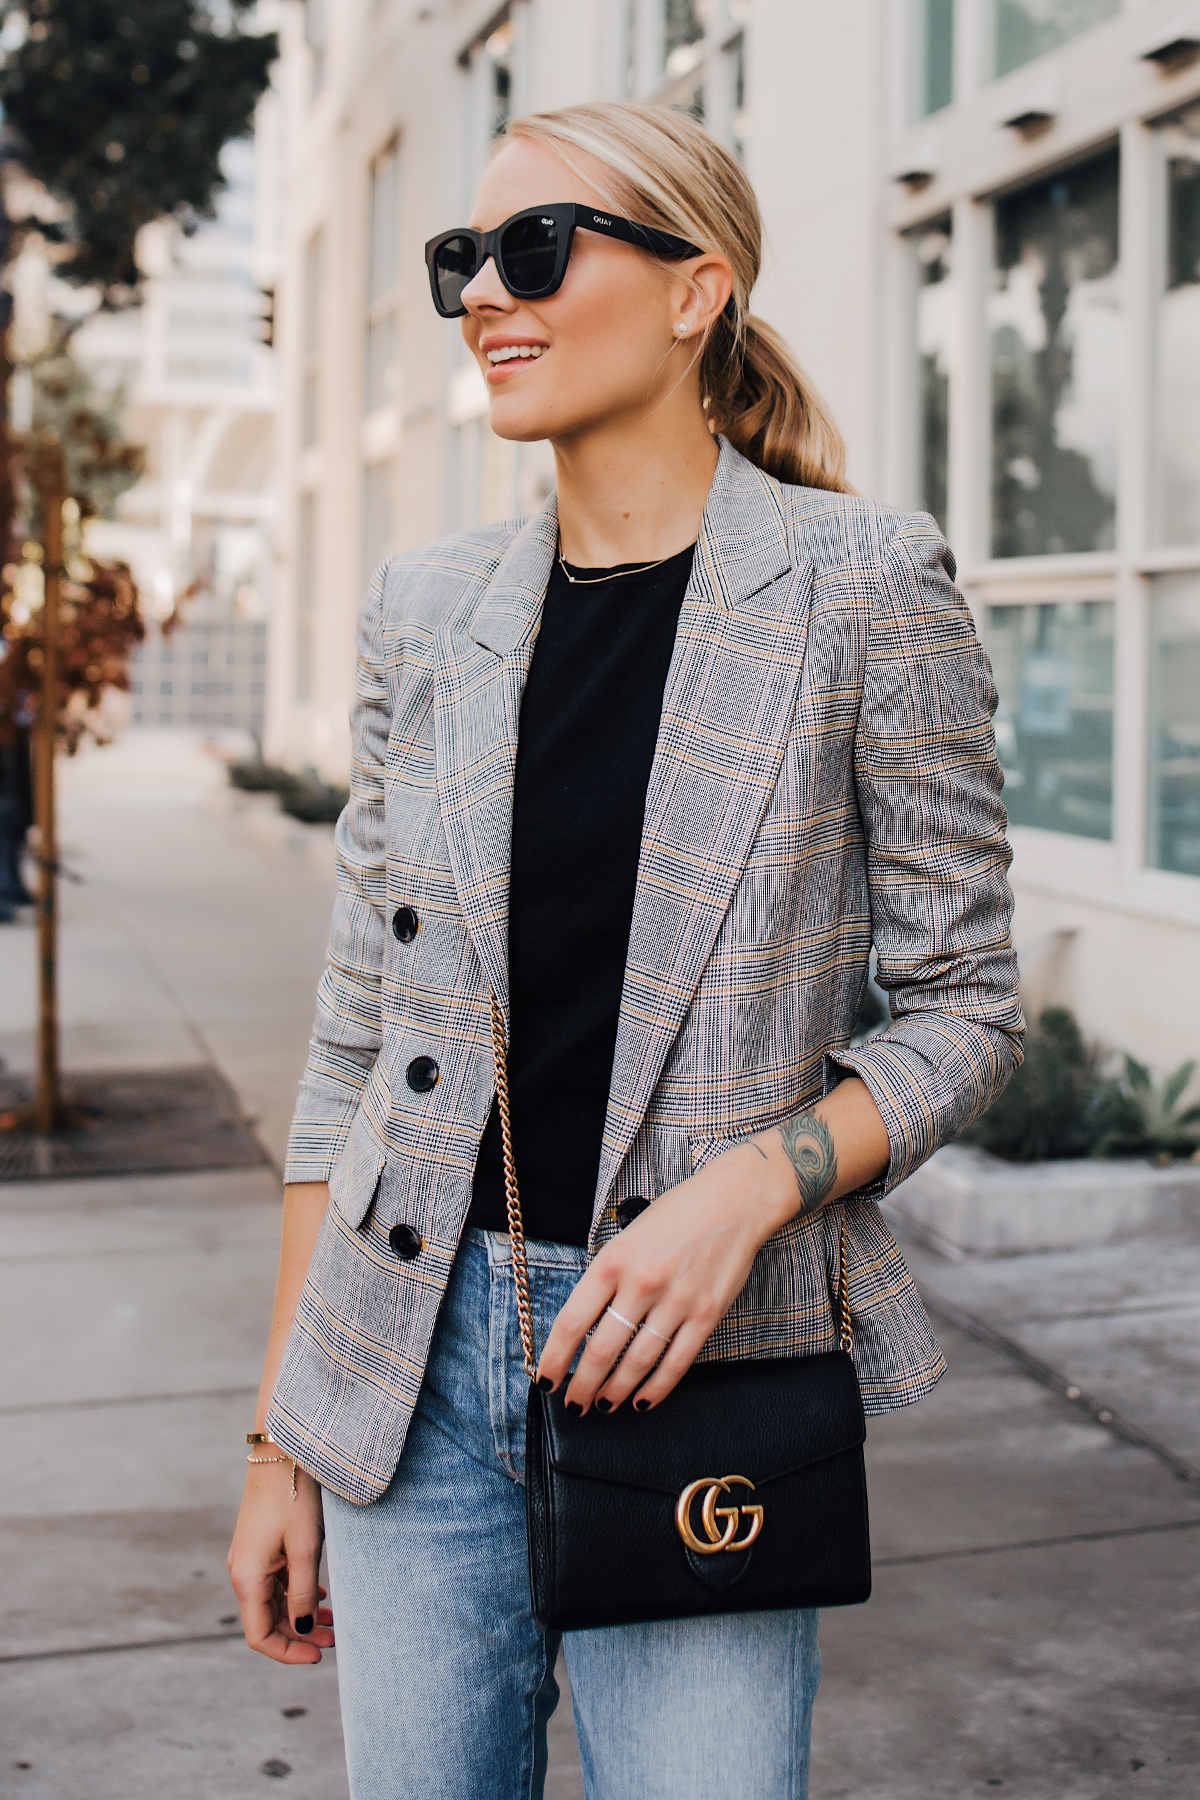 Blonde Woman Wearing Plaid Blazer Mother Ripped Denim Jeans Gucci Black Handbag Fashion Jackson San Diego Fashion Blogger Street Style